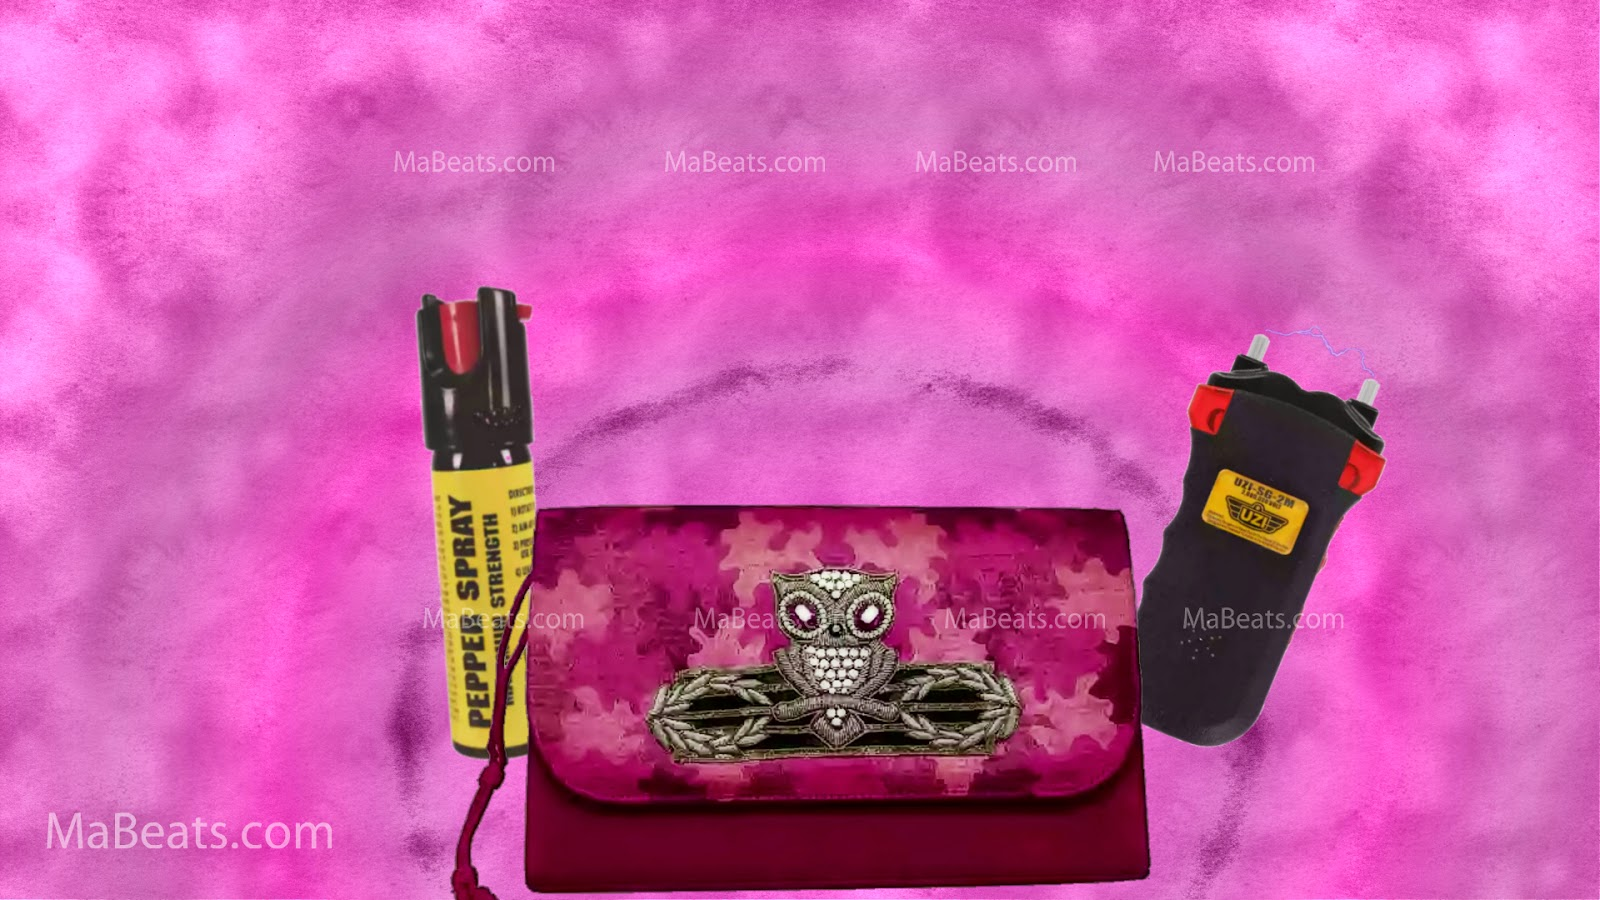 Woman safety, pepper spray, Stun guns, pink cloud background